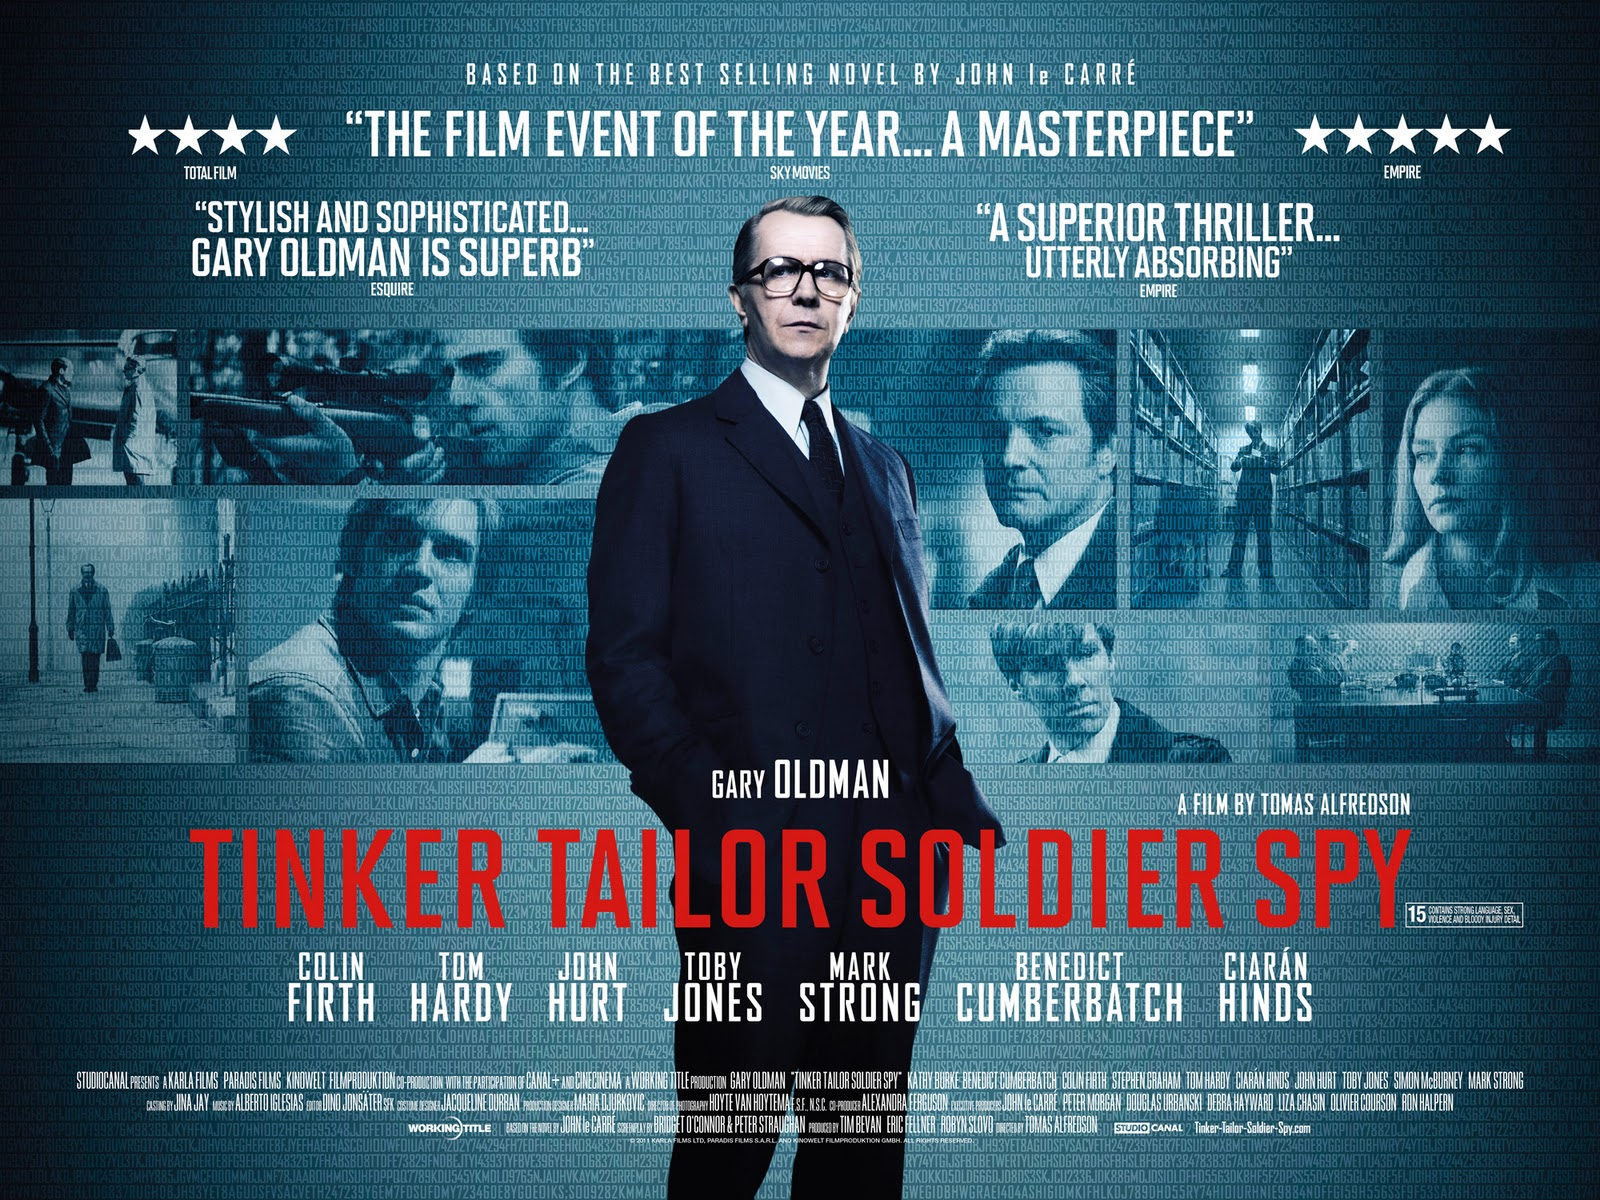 http://1.bp.blogspot.com/-pH0GpWVHtSs/TncRpWwkhmI/AAAAAAAADG4/pJfN_O4KCE4/s1600/Tinker_Tailor_Soldier_Spy_Movie_Quad.jpg